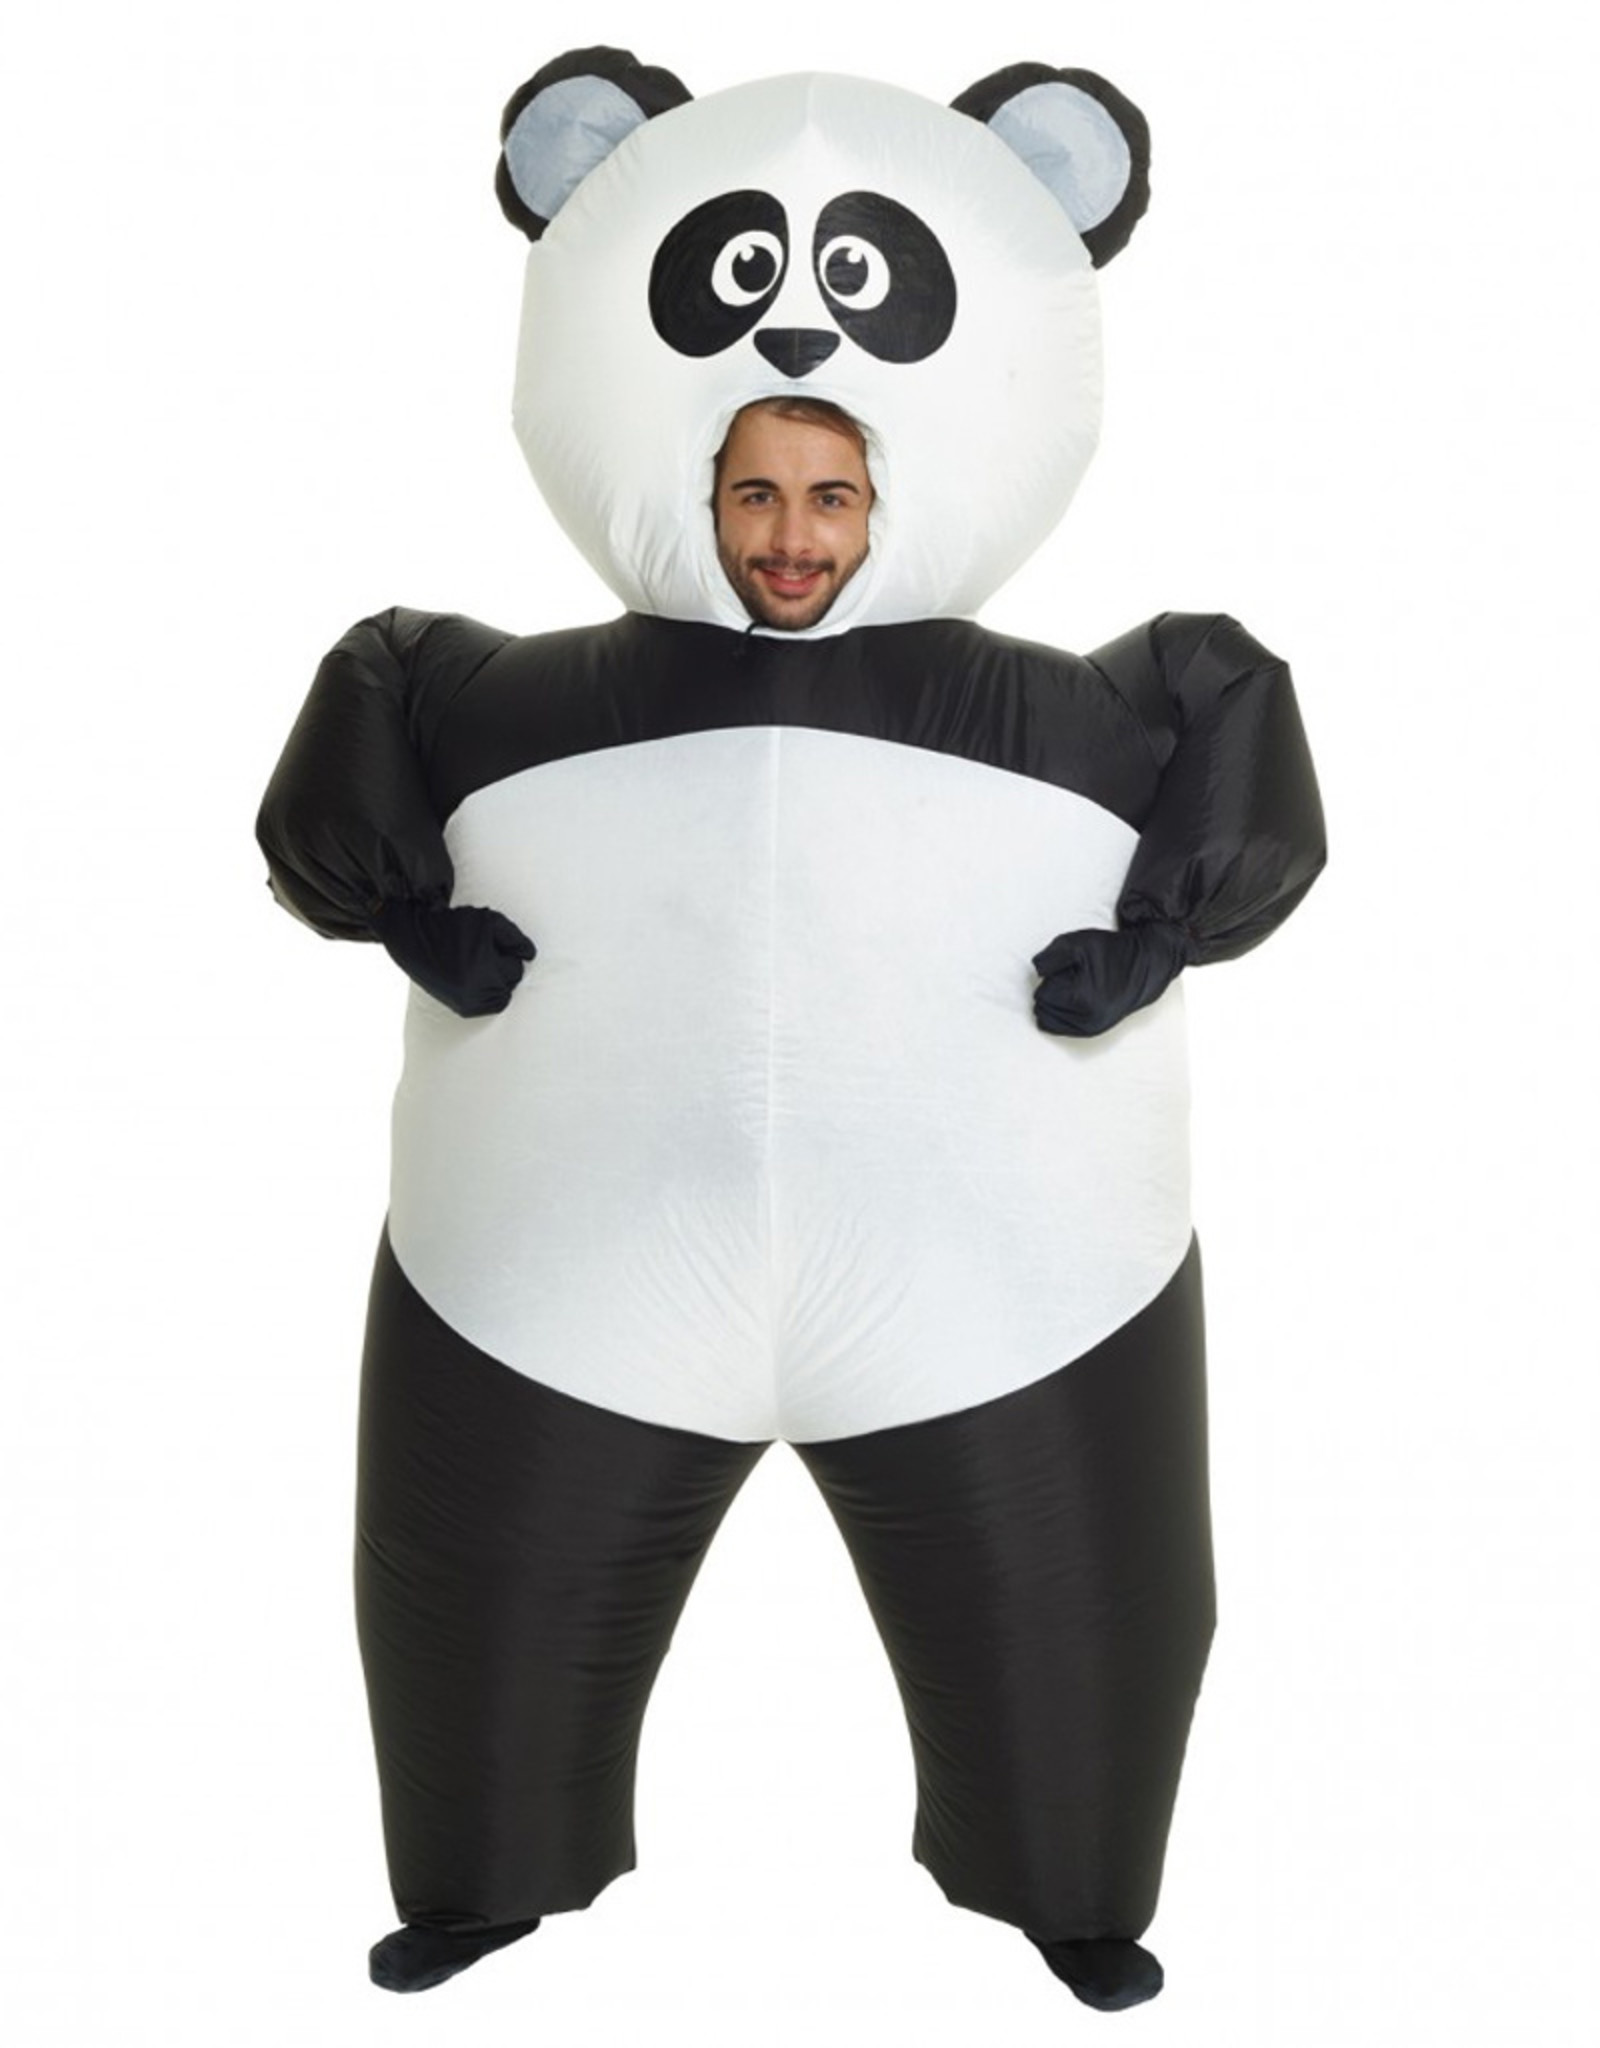 LOFTUS INTERNATIONAL Giant Inflatable Panda Costume - Adult